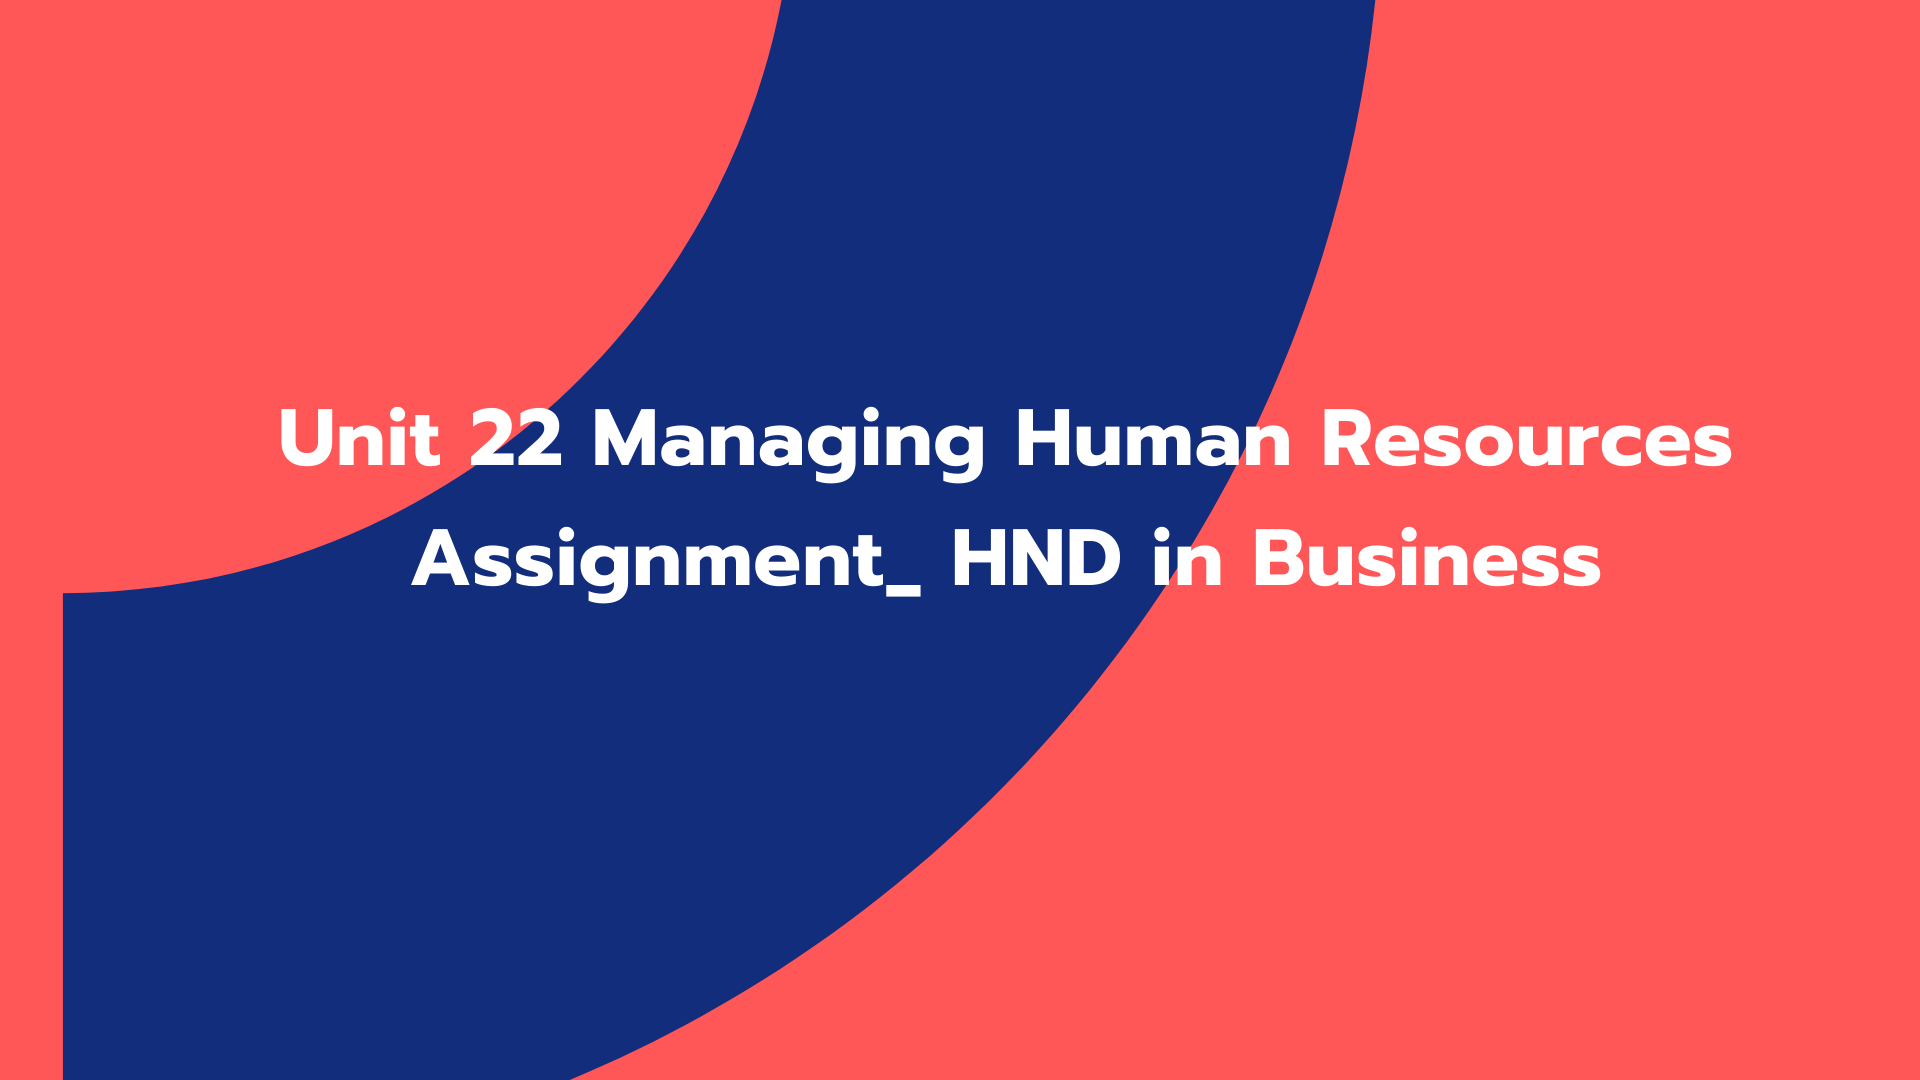 Unit 22 Managing Human Resources Assignment_ HND in Business